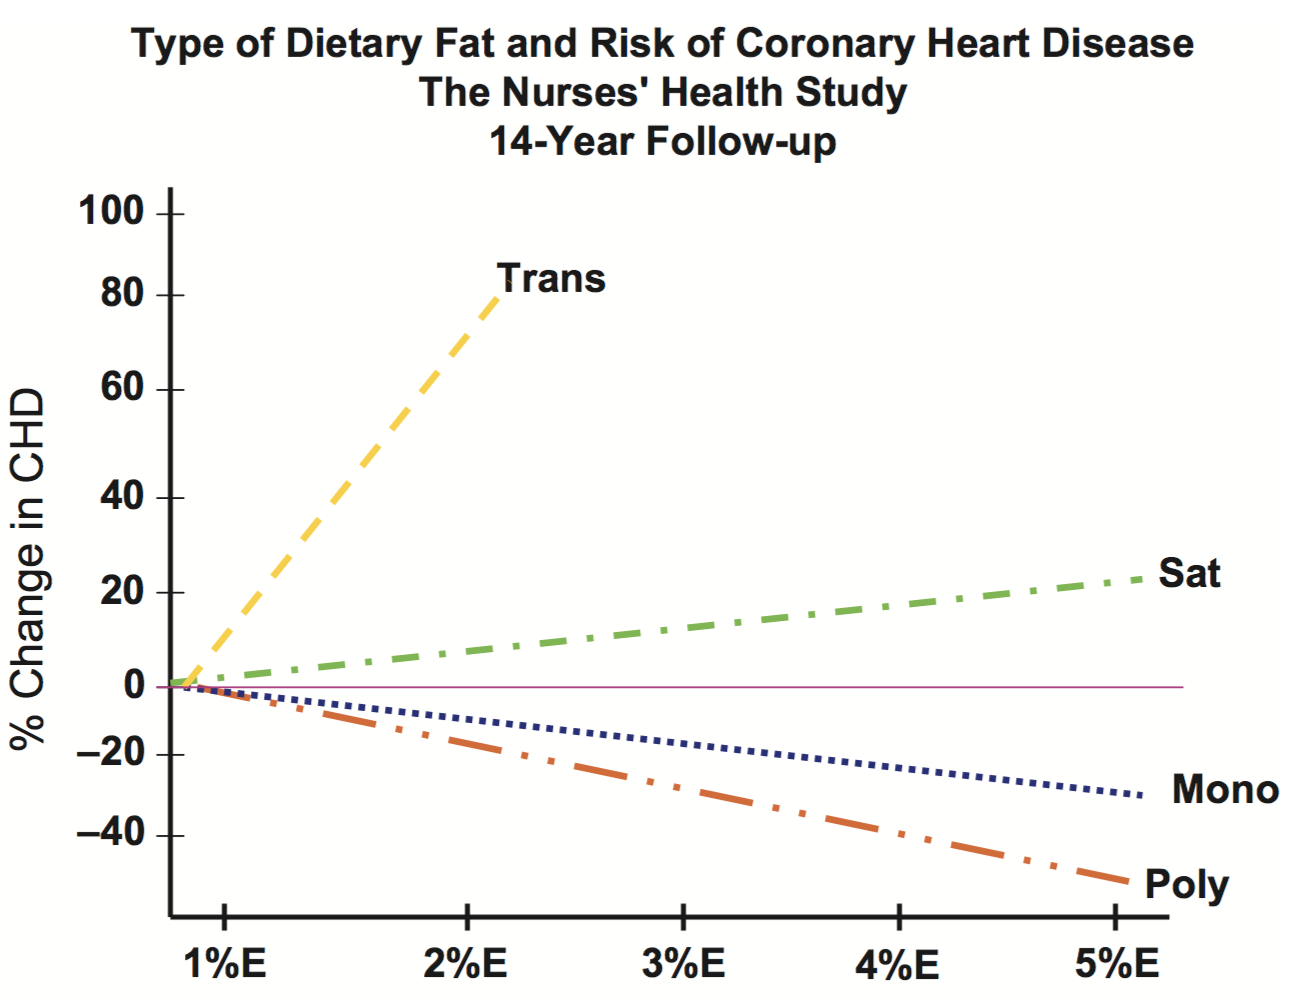 Figure 2. Type of Dietary Fat and Risk of Coronary Heart Disease.  E = % isocaloric change in energy intake in place of carbohydrate. 1%E = 1% of daily energy replacement of carbohydrate with fat, 2%E = 2% replacement of carbohydrate with fat, etc.Trans = trans fat; Sat = saturated fat; Mono = monounsaturated fat; Poly = polyunsaturated fat.